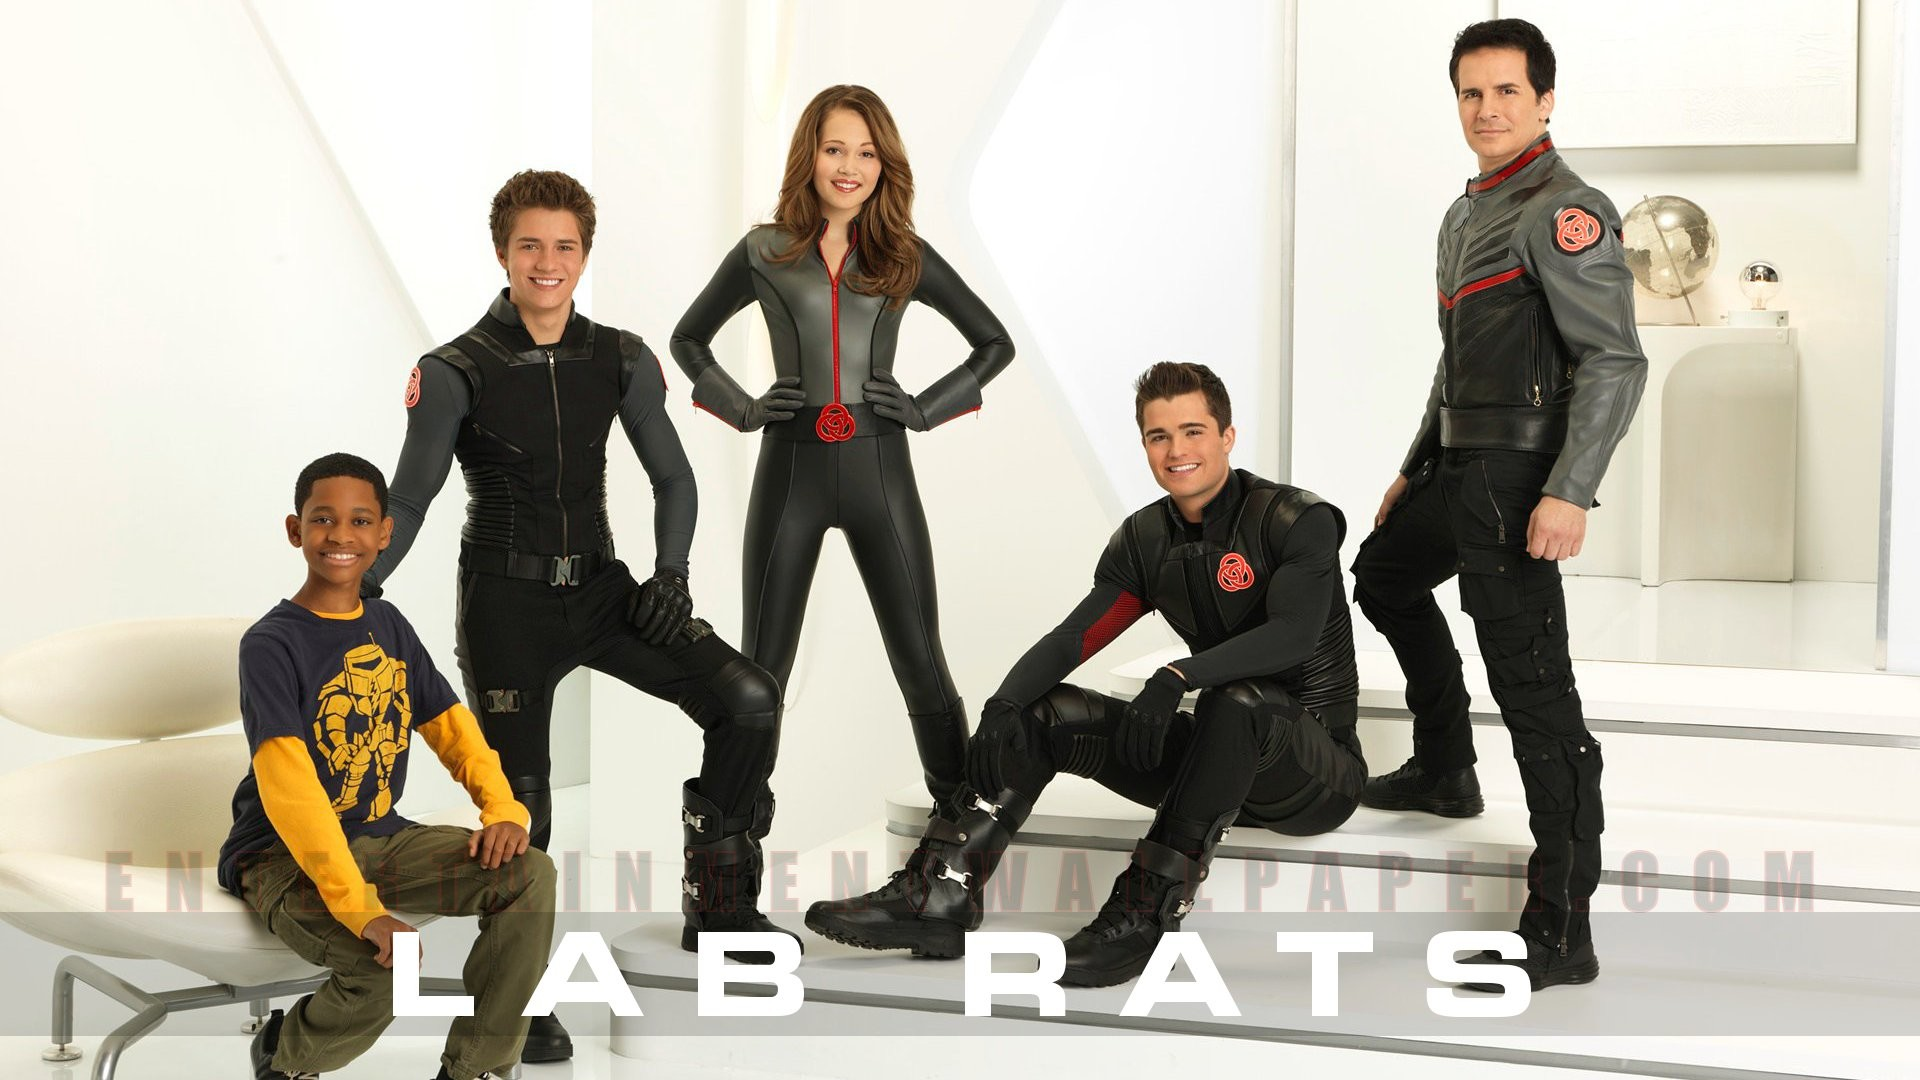 Lab Rats Wallpapers 85 Pictures